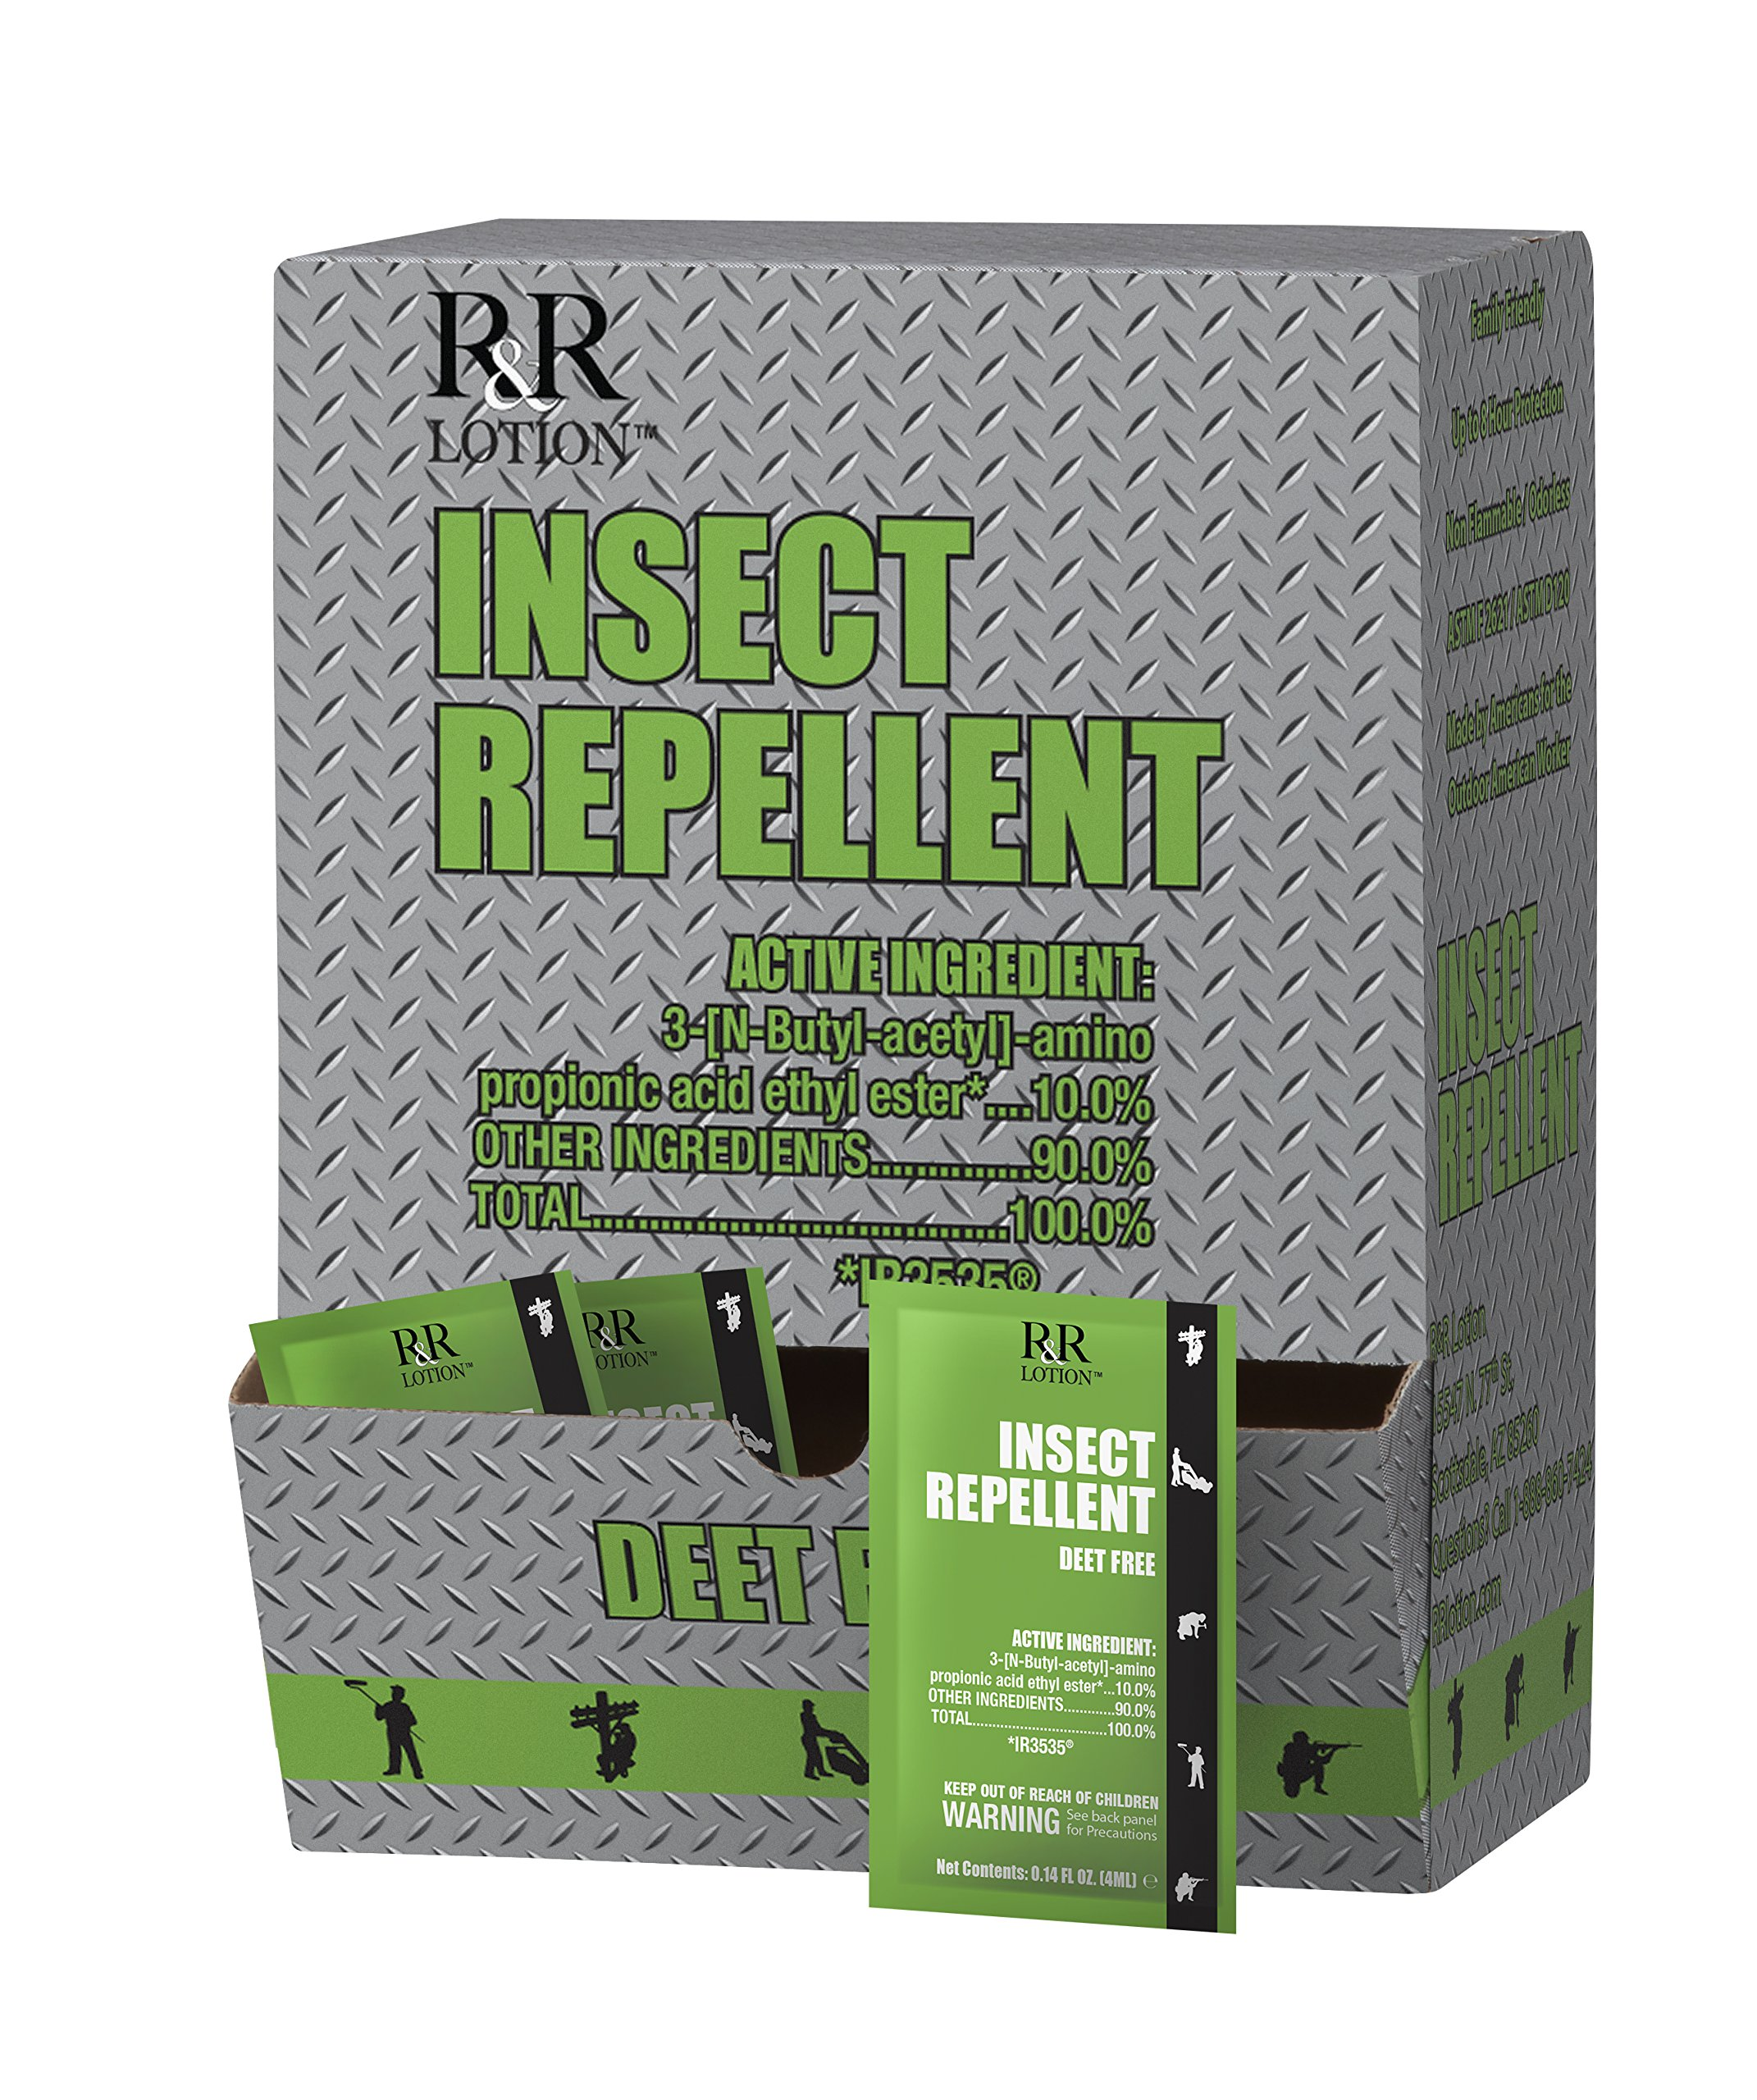 Insect Repellent Lotion Deet Free. Non-Greasy Non-Tacky Odorless 8 Hour Protection Safe for All Ages EPA Registered as a Biopesticide Using IR3535 Does not Kill, only Repels Insects Box of 200-4ML by R&R Lotion